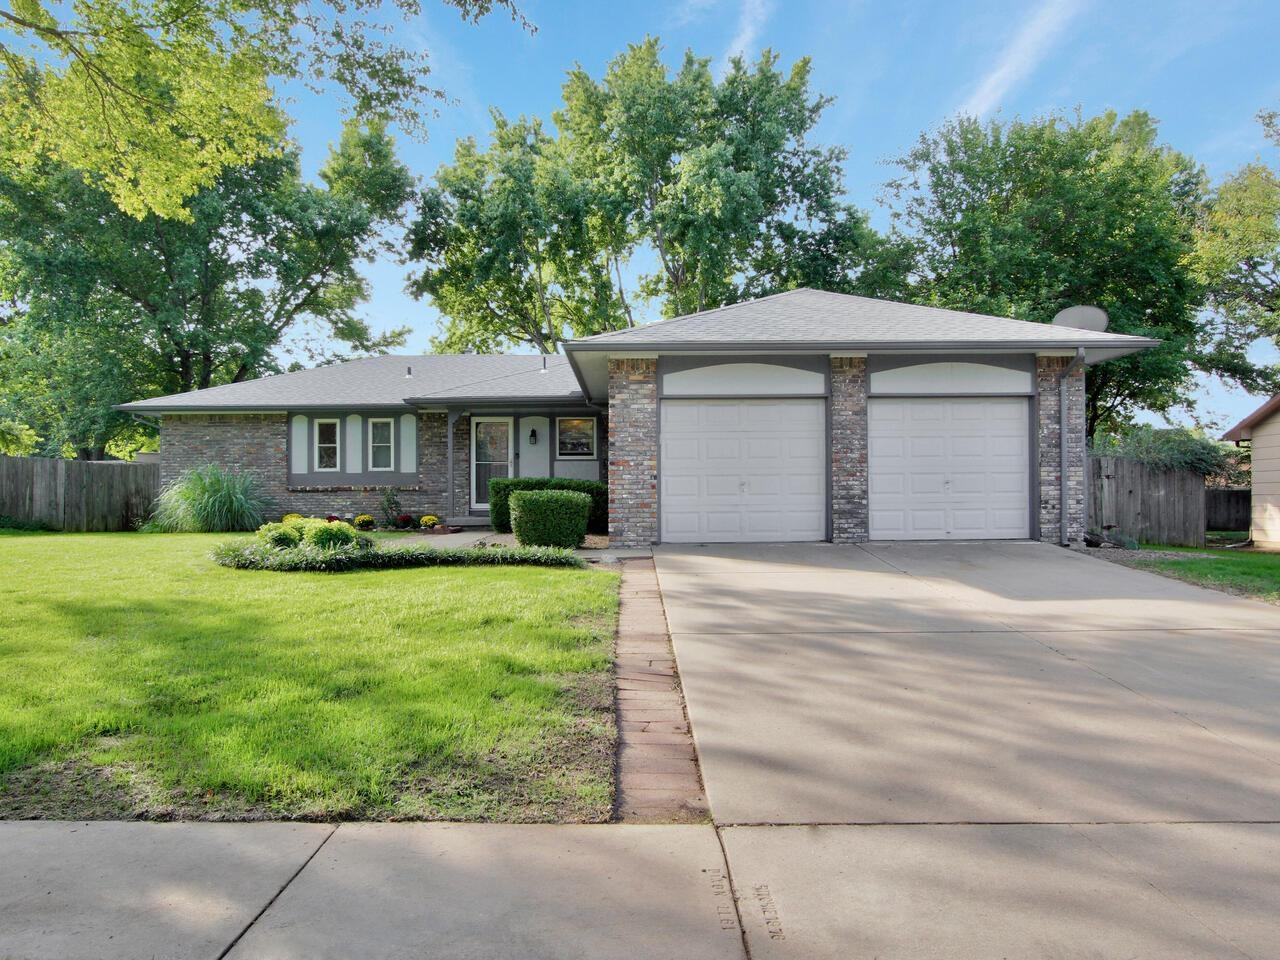 Check out this adorable 3 bedroom, 3 bathroom home located in a great neighborhood! When you walk in